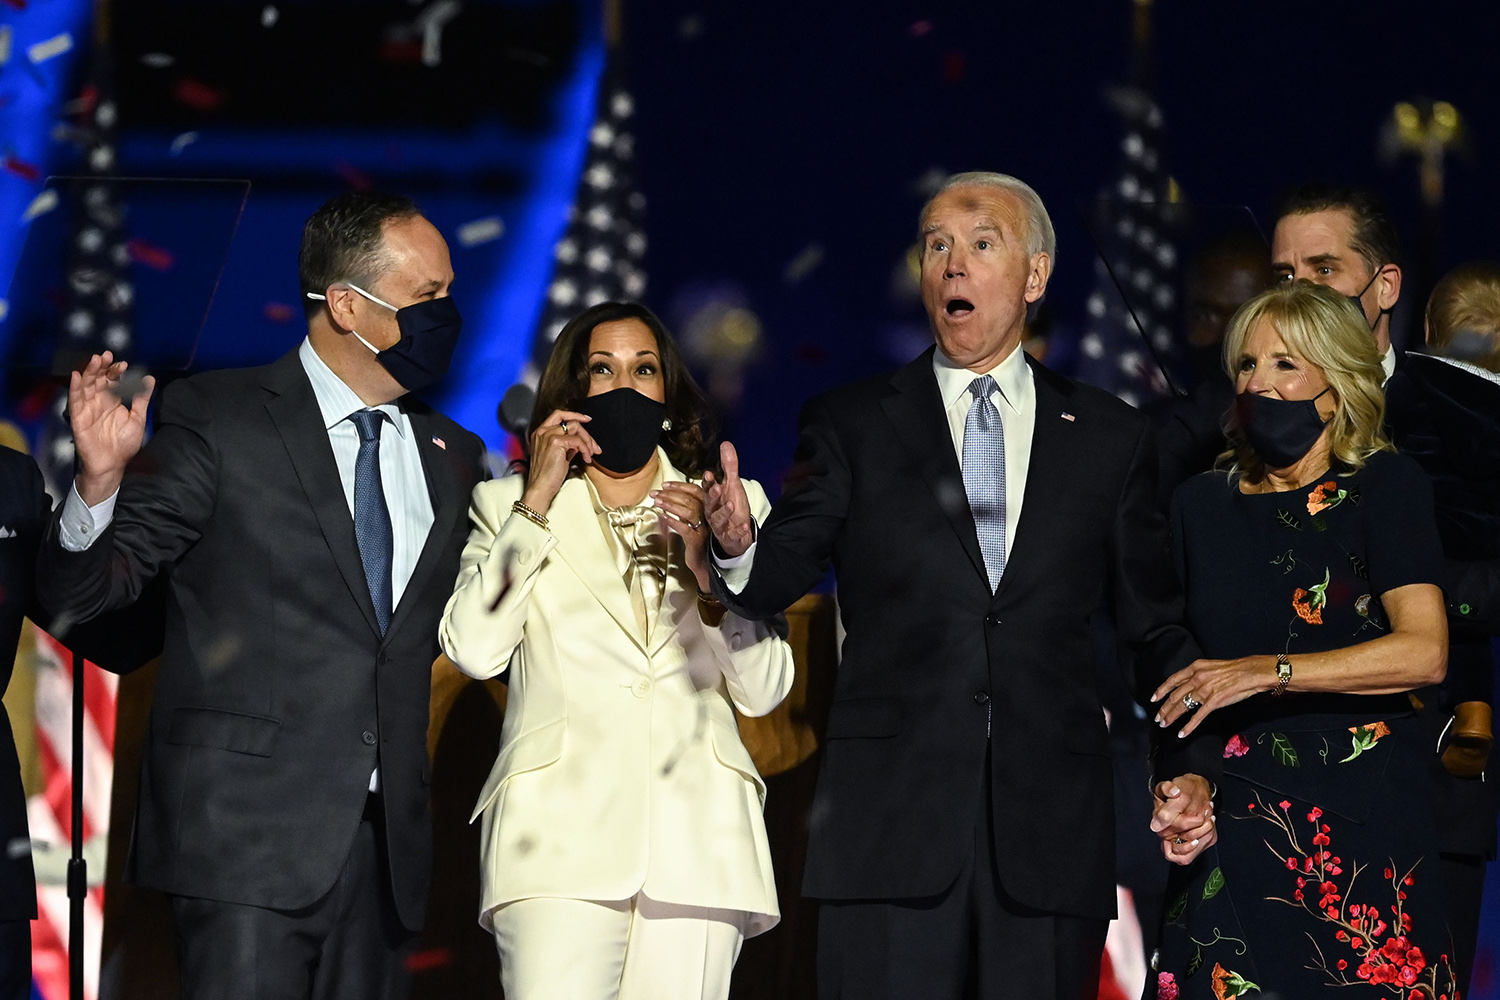 U.S. President-elect Joe Biden and Vice President-elect Kamala Harris—with their spouses Jill Biden and Doug Emhoff—react as confetti falls after delivering remarks in Wilmington, Delaware, and being declared the winners of the presidential election Nov. 7. JIM WATSON/AFP via Getty Images